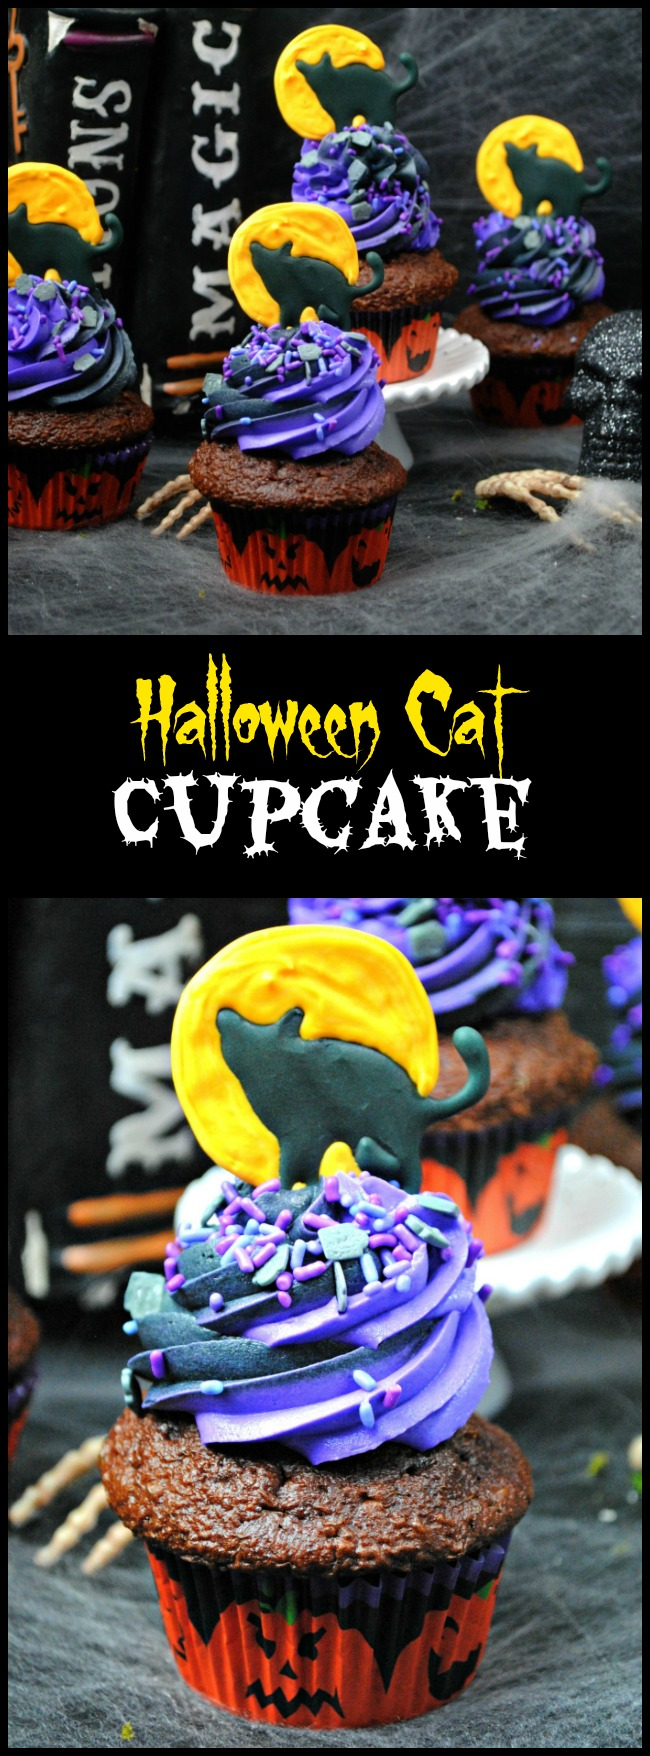 Cupcakes made from scratch taste so much better than a box. The Halloween Cat Cupcake recipe really isn't that complicated.